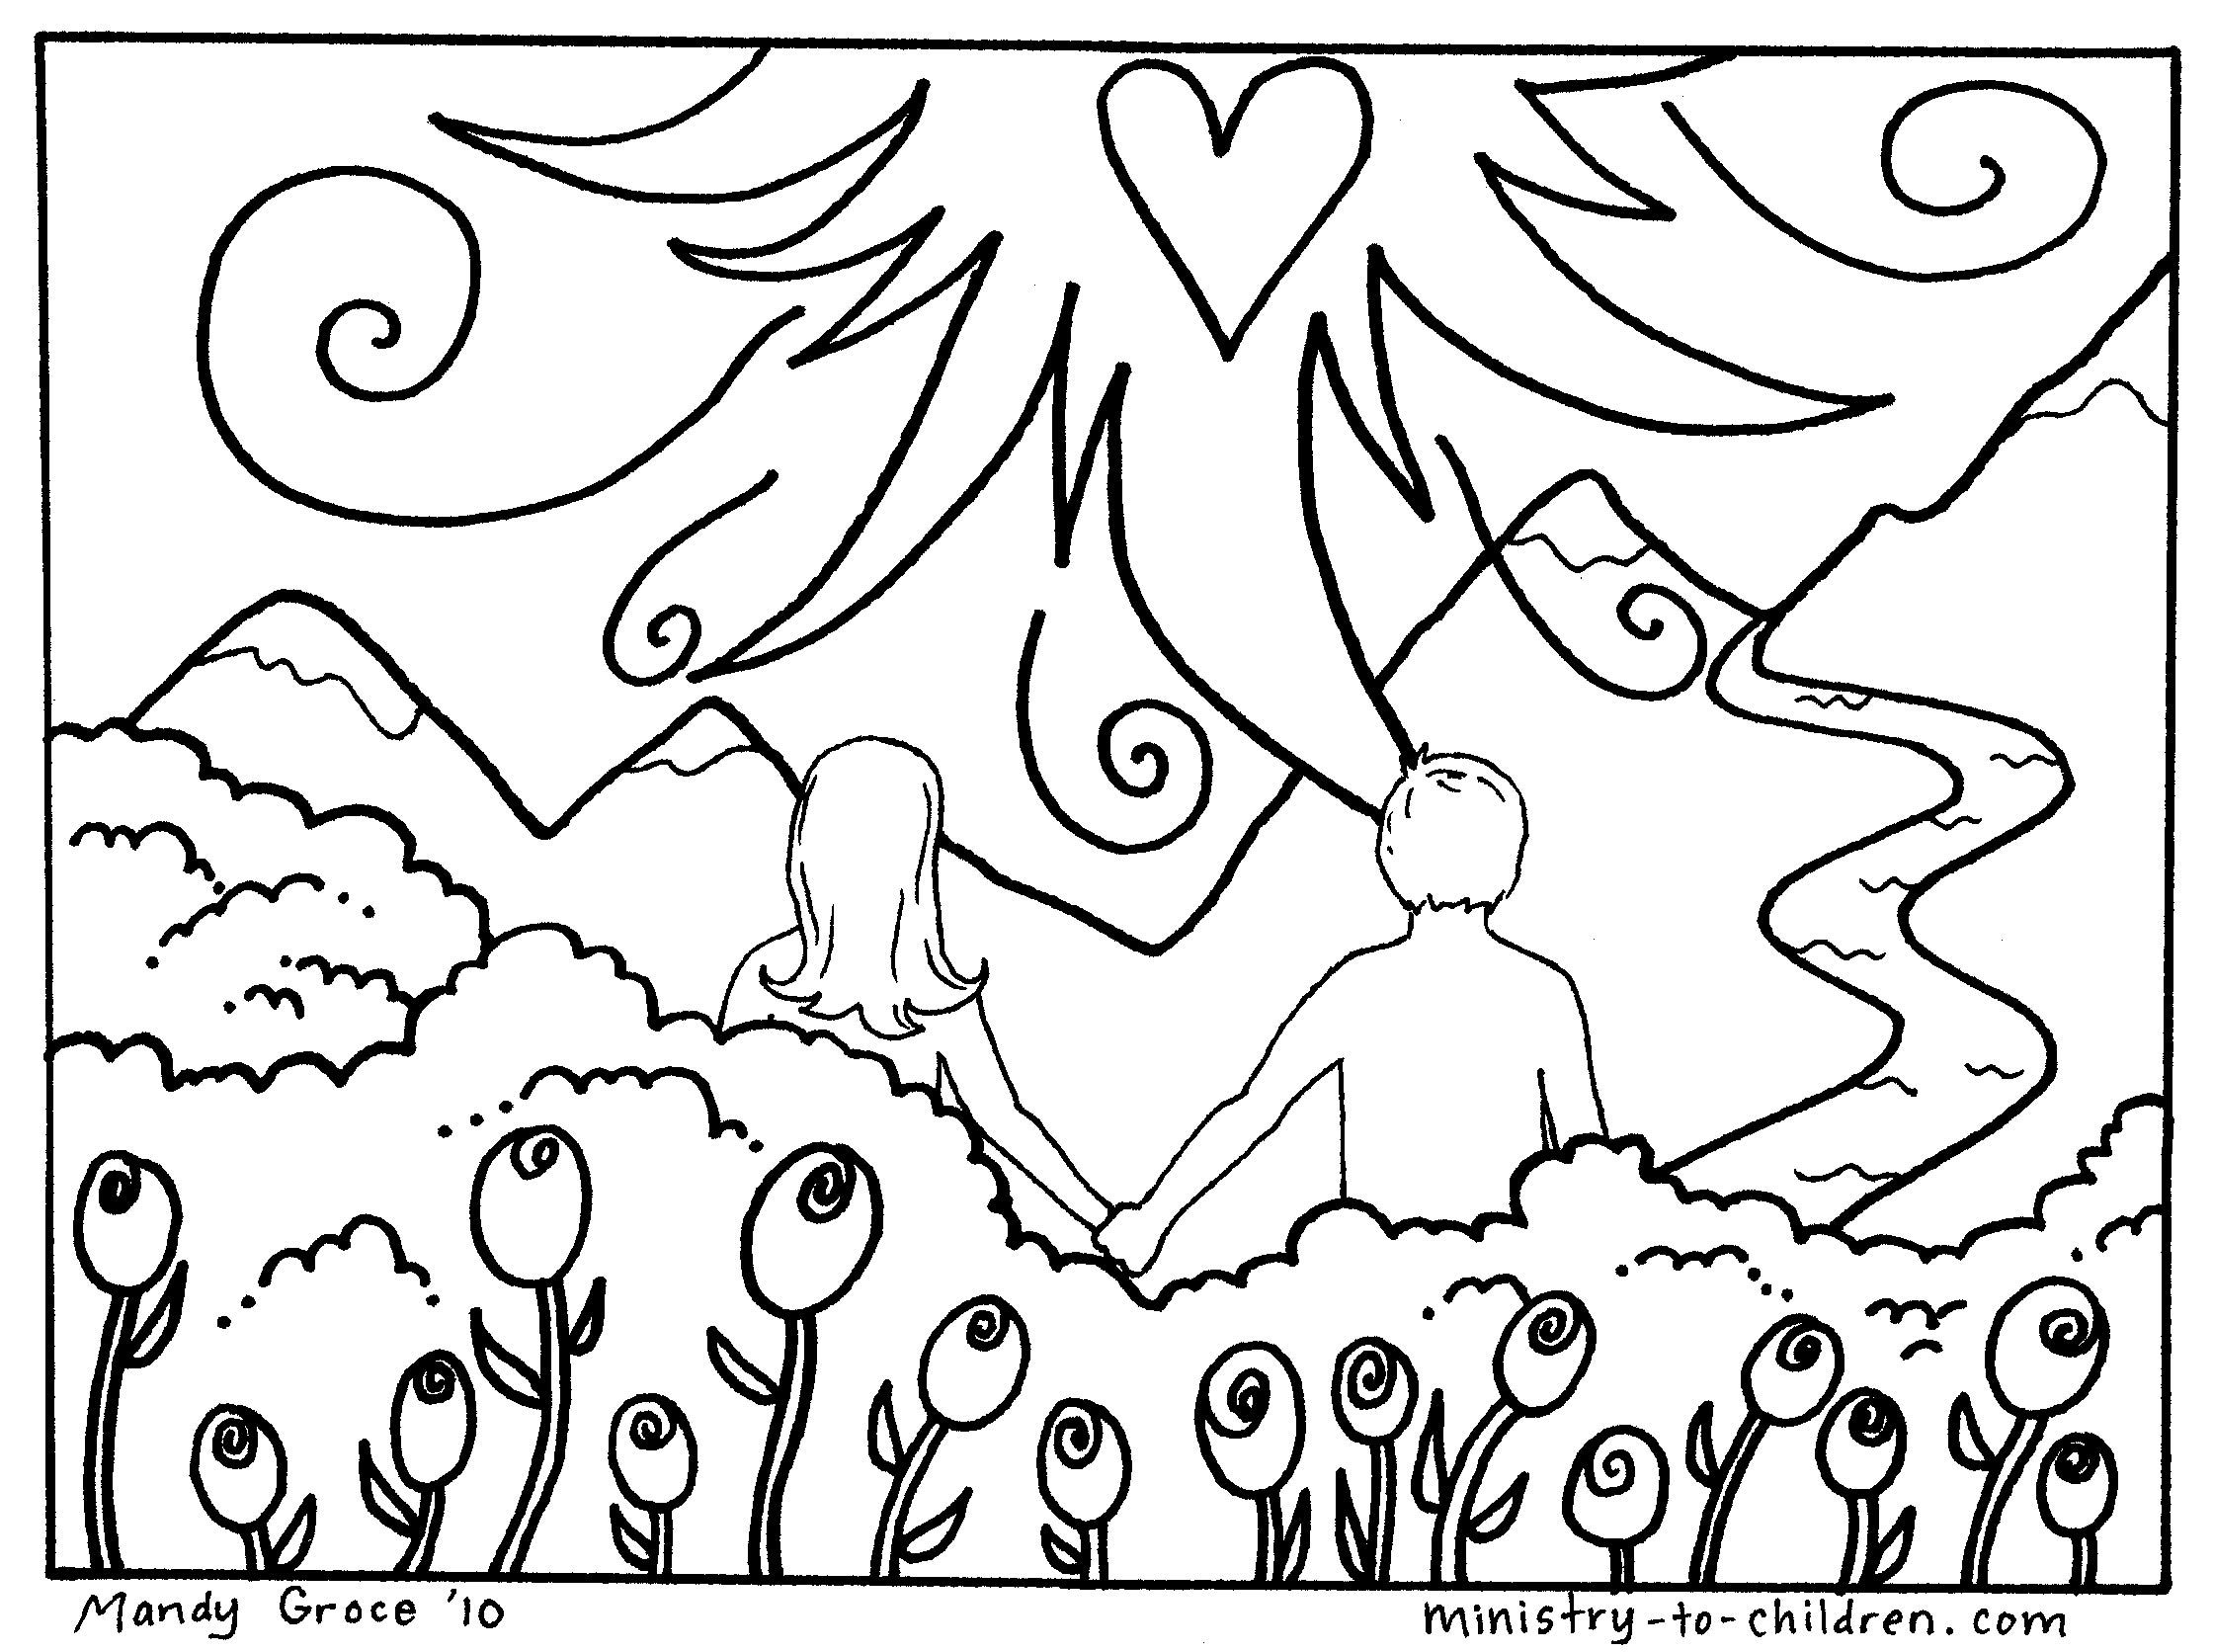 Adam and eve garden of eden free printable coloring page for Garden of eden coloring page